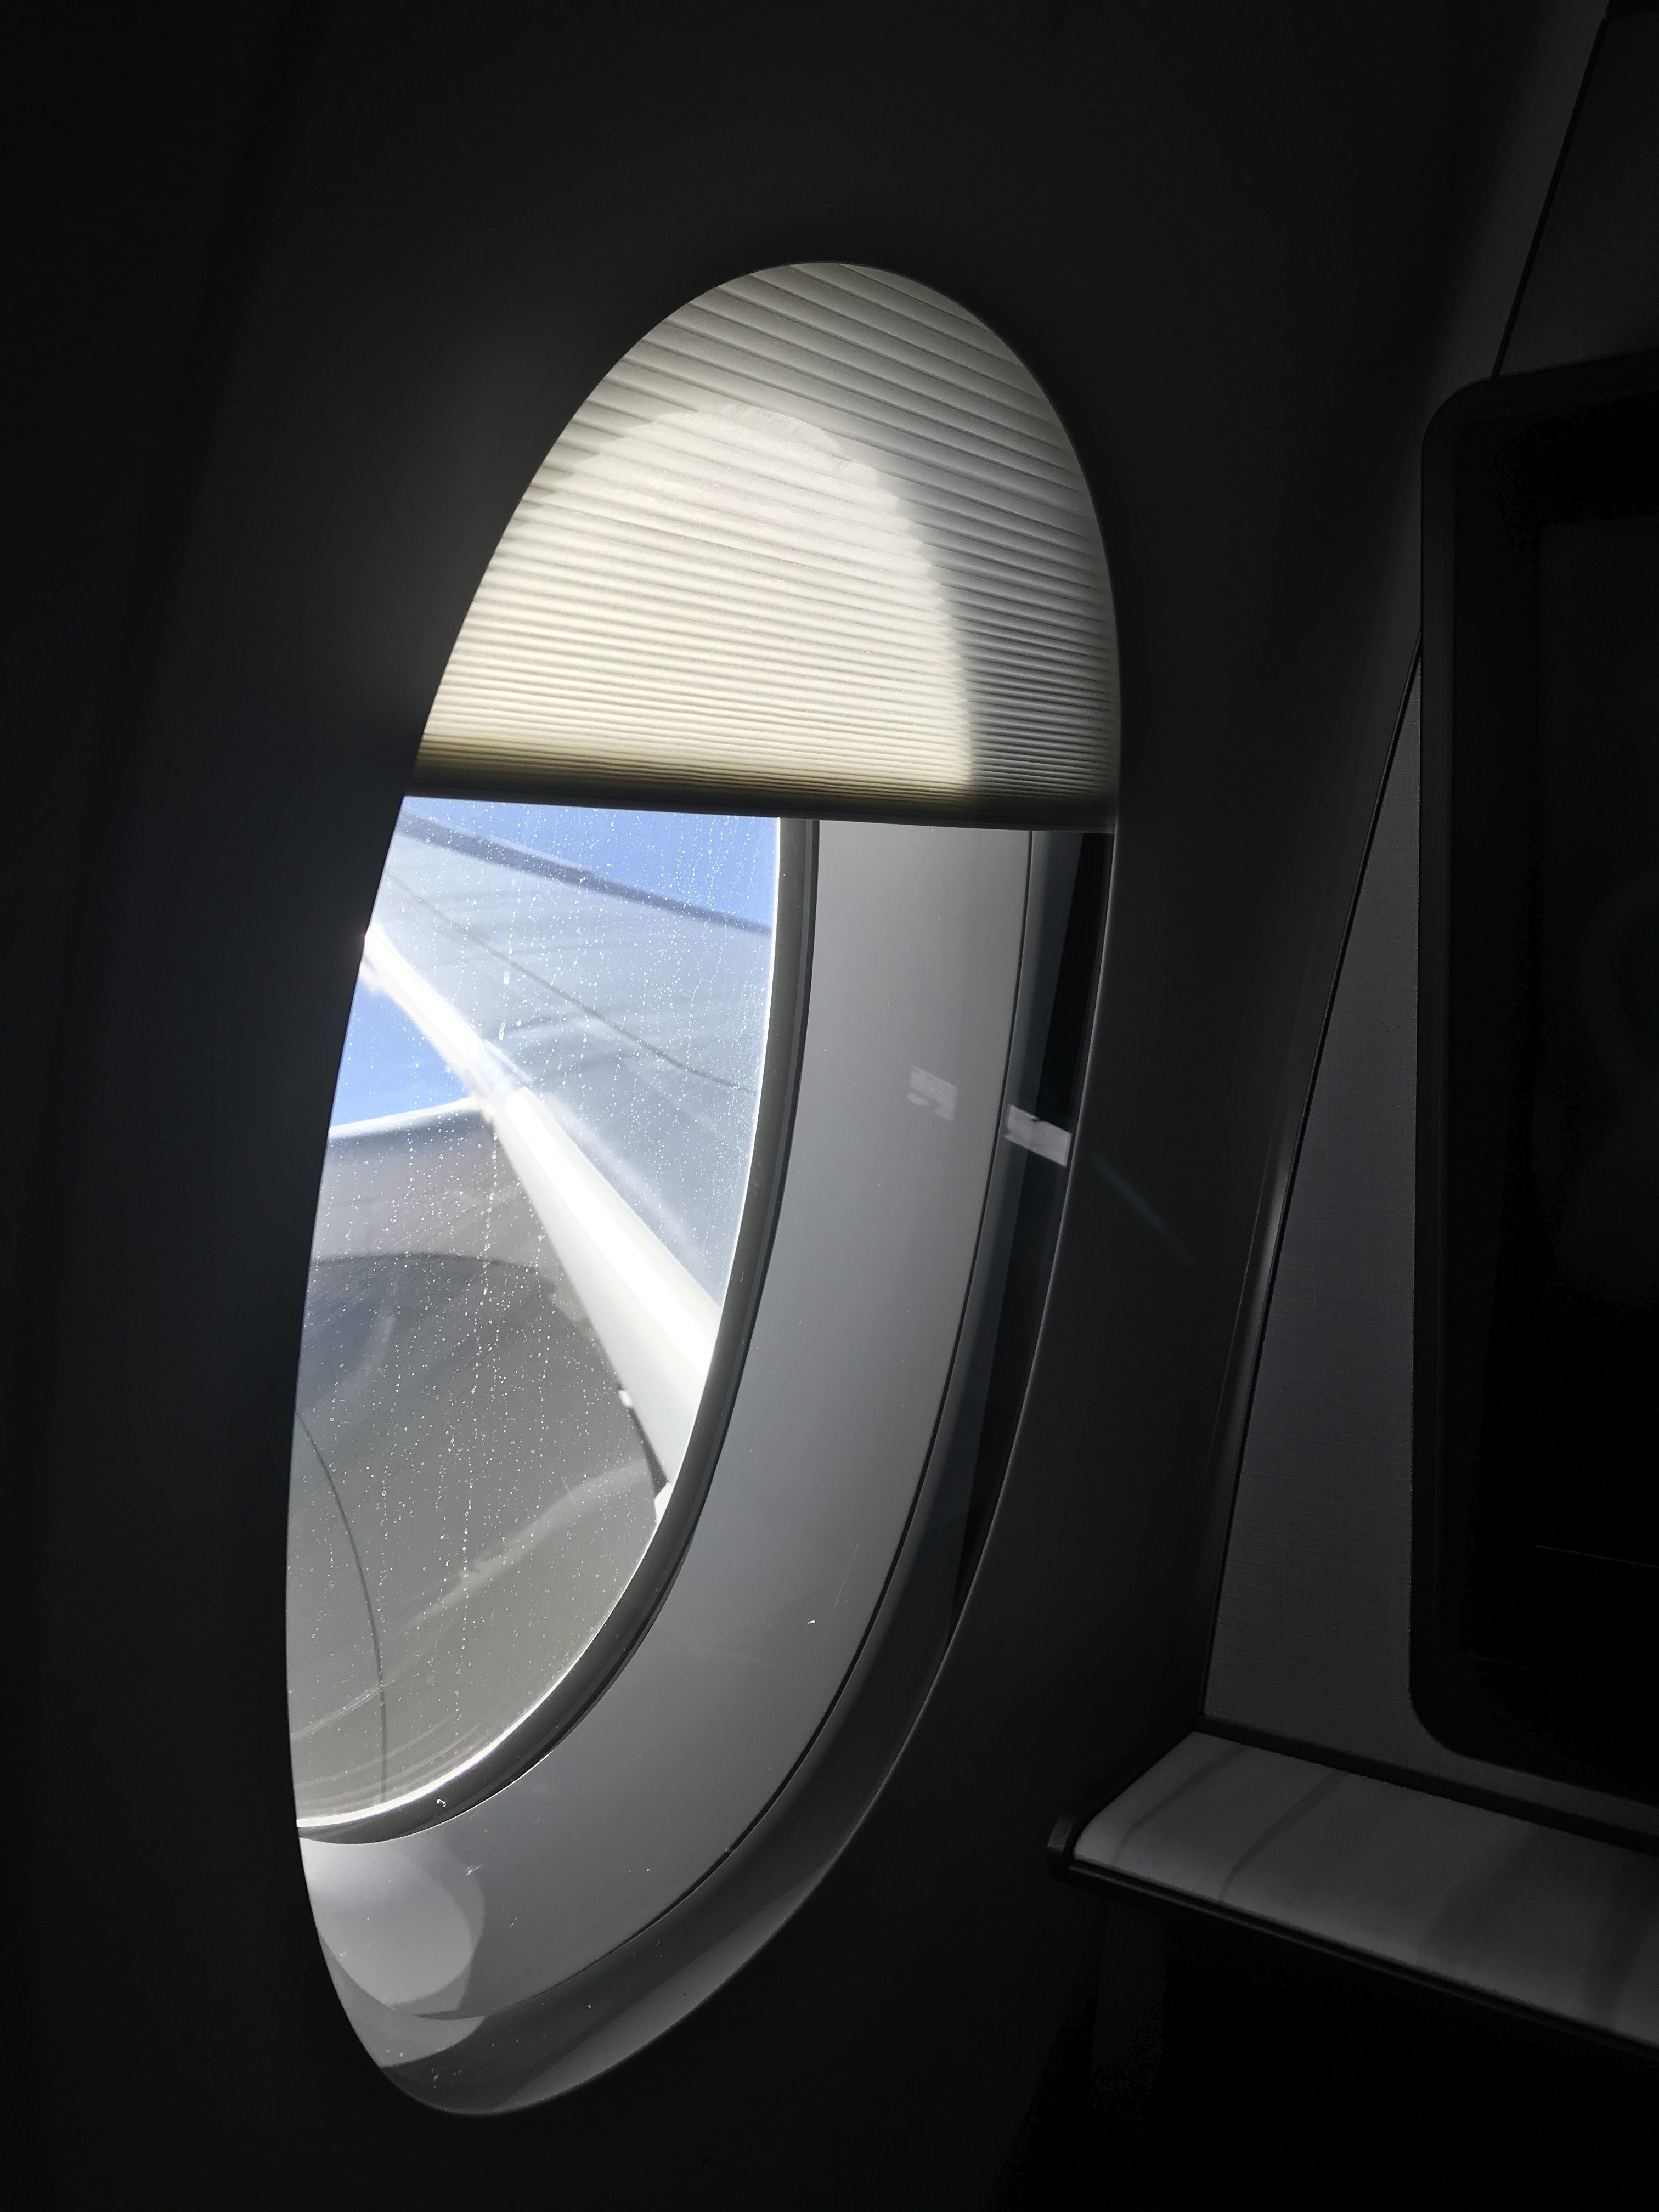 Qatar Airways QSuites A350-900 business class review shade